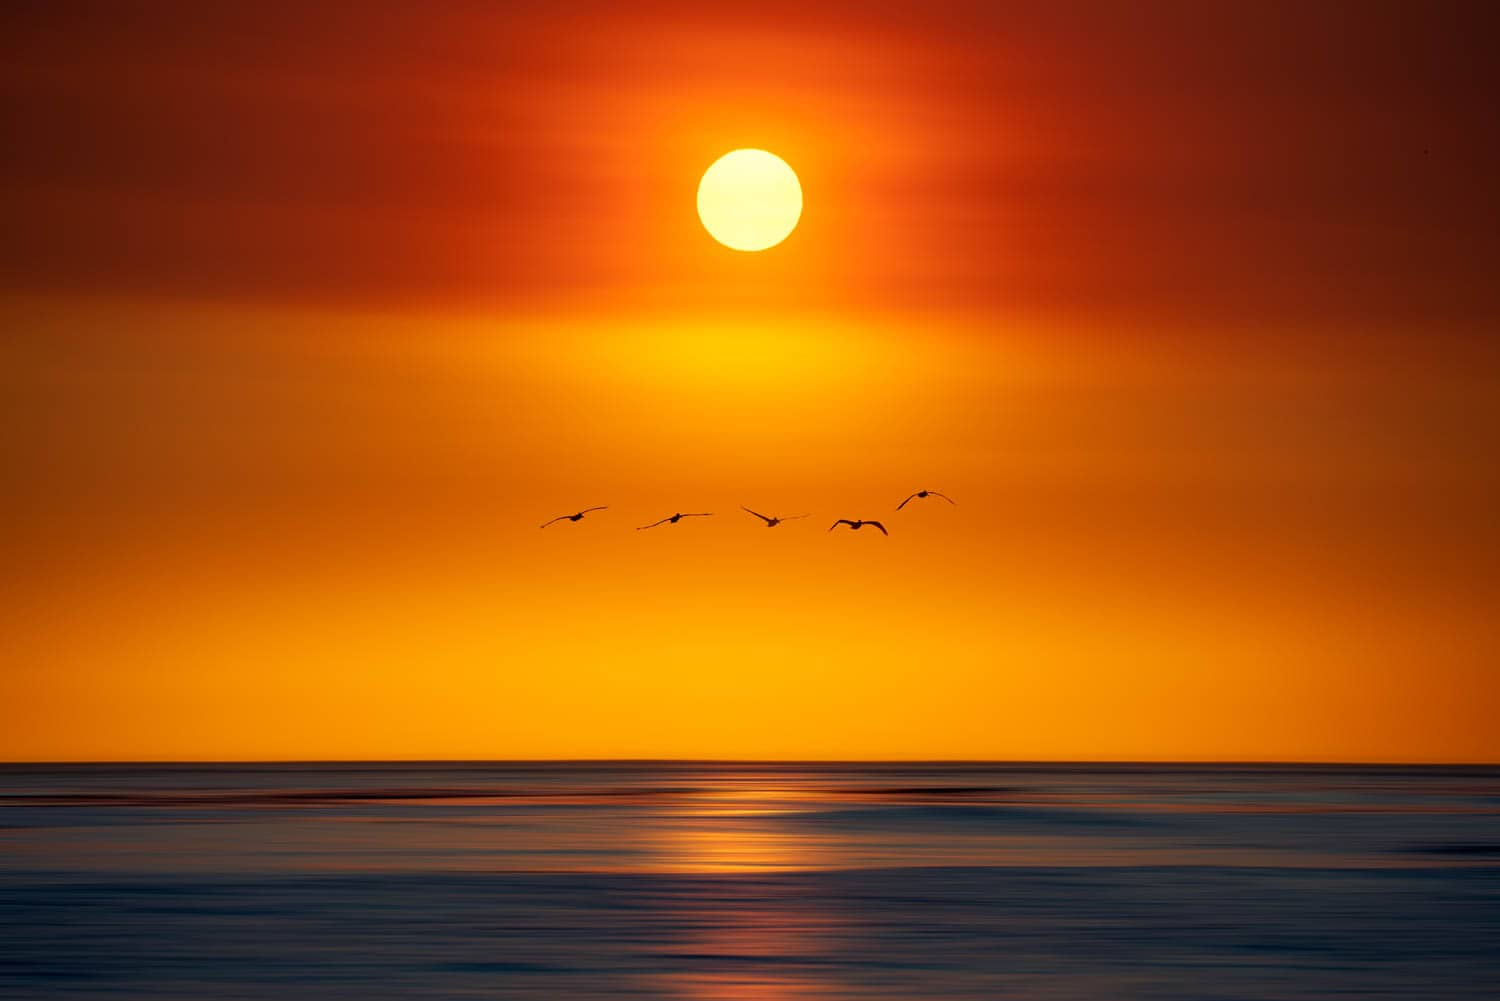 Pelicans fly over ocean with red sky and sun